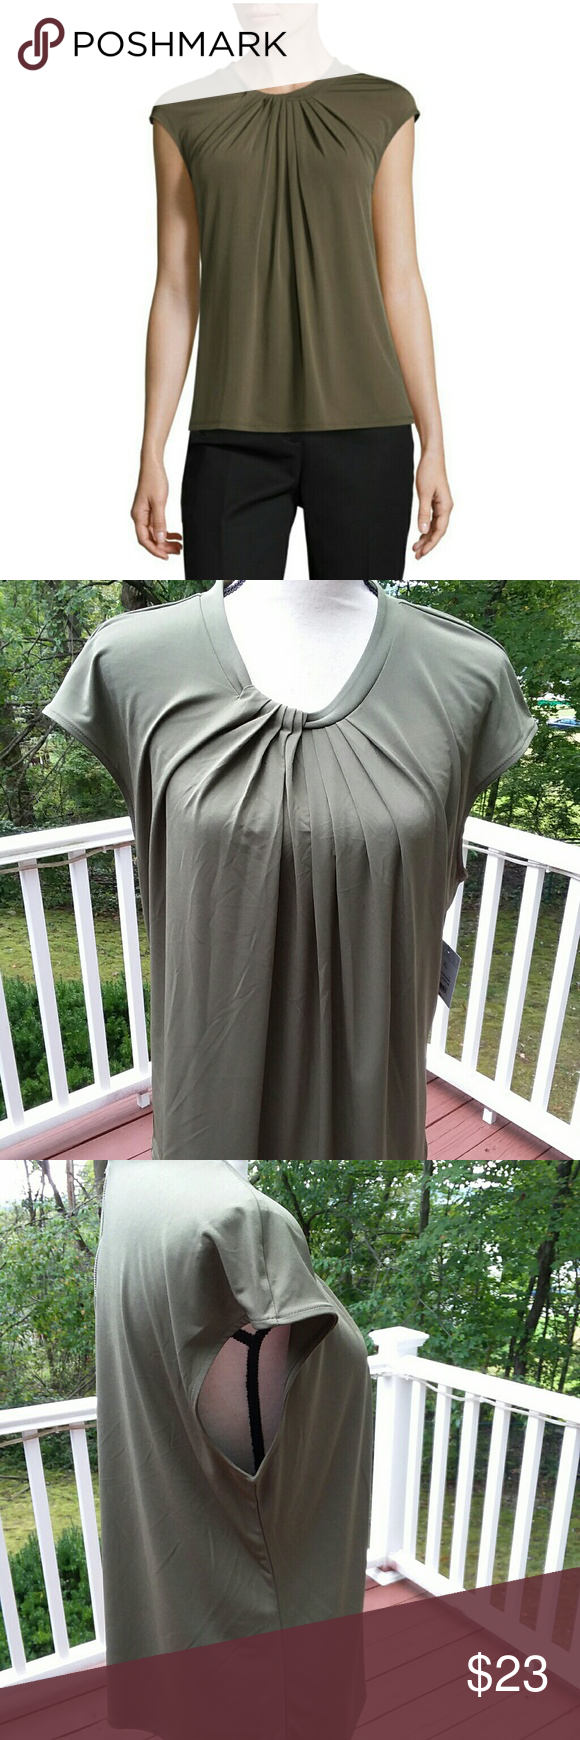 385110a9a Liz Claiborne Sleeveless Pleated Neck Knit Blouse « Alzheimer's ...